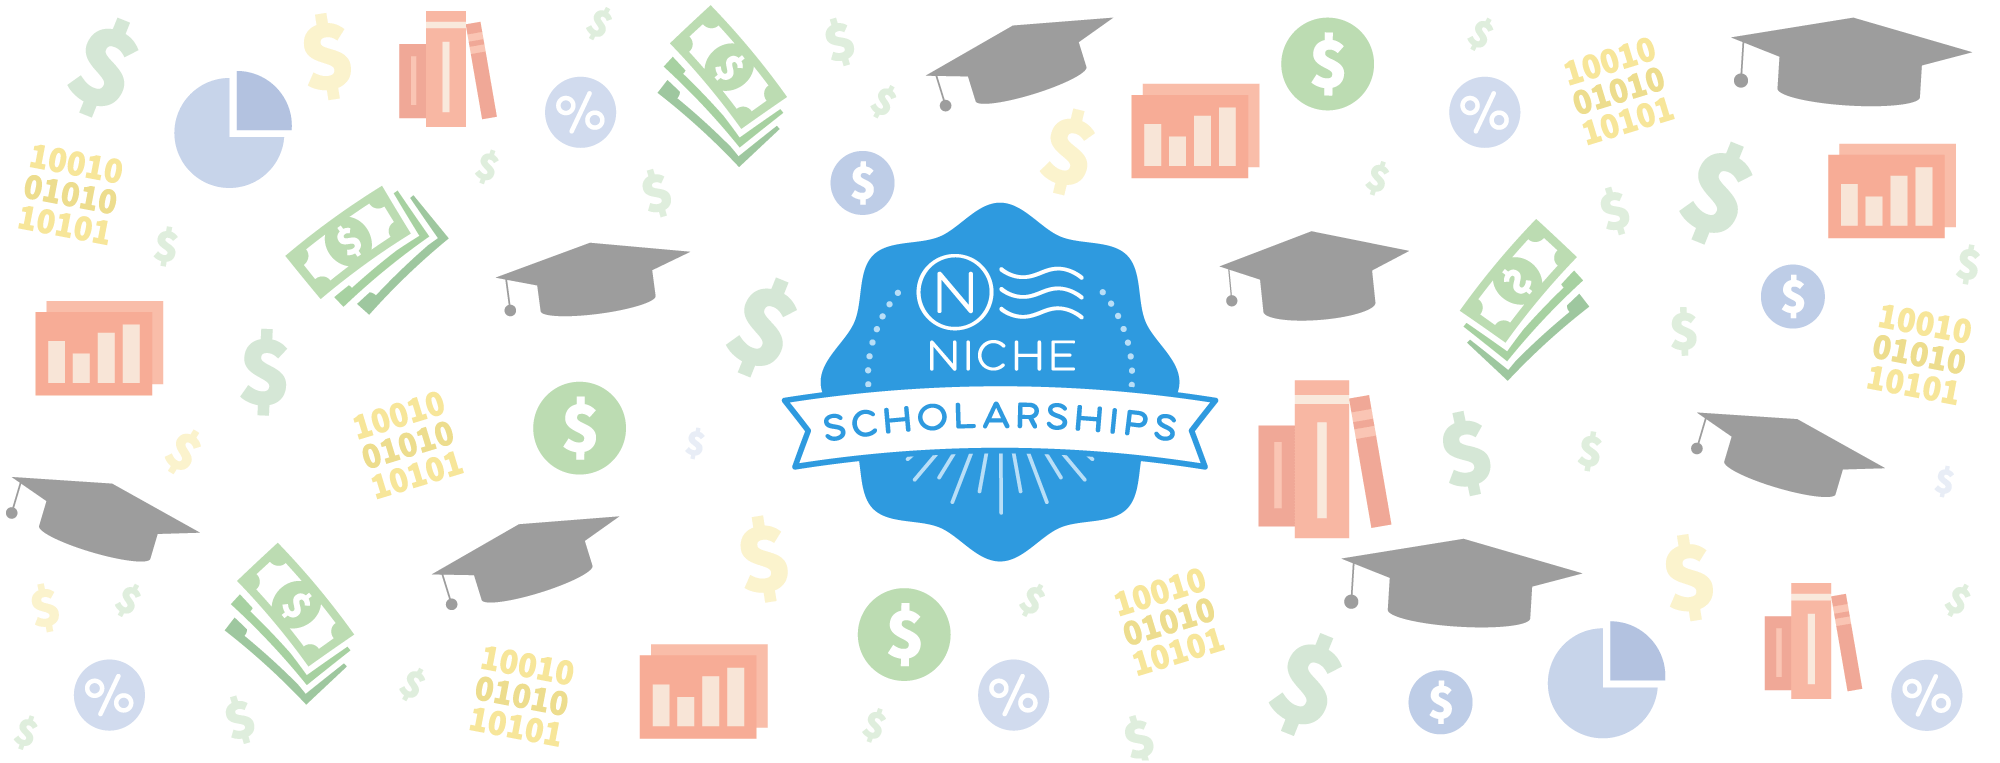 013 Essay Example No Wondrous Scholarship Scholarships For High School Seniors Niche Reddit Legit Full